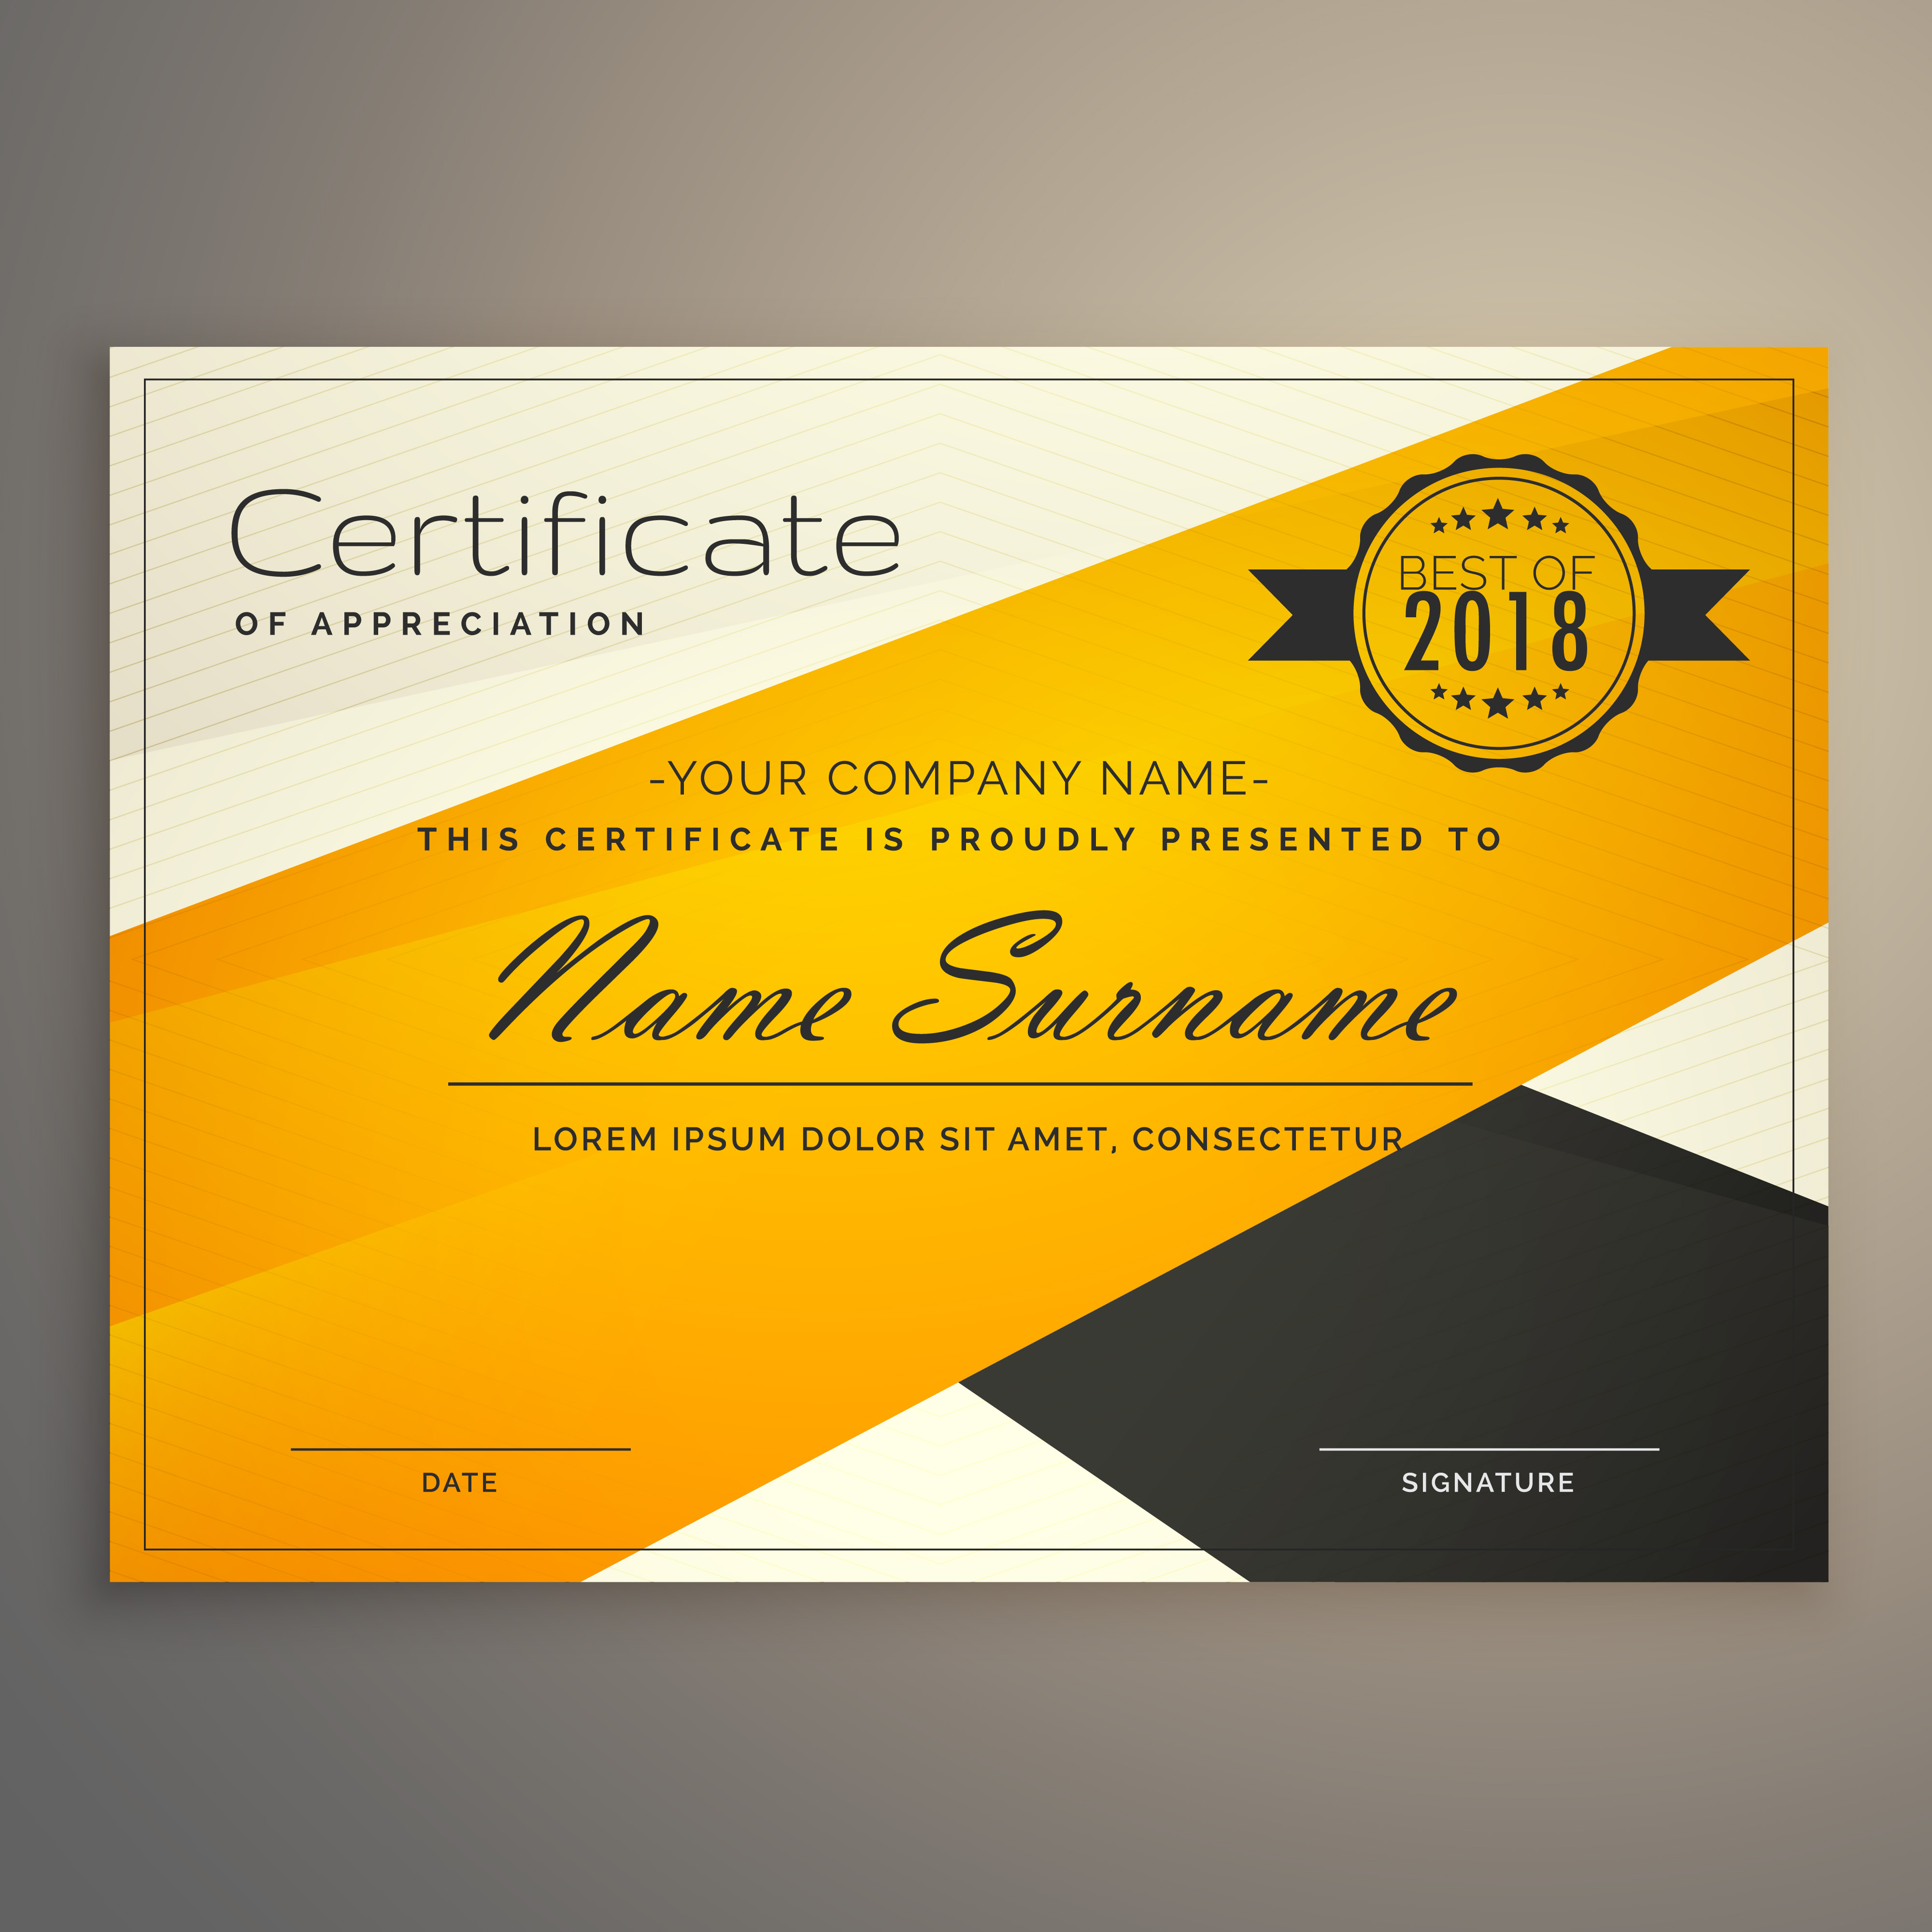 Awesome yellow and black certificate design template download awesome yellow and black certificate design template download free vector art stock graphics images alramifo Images